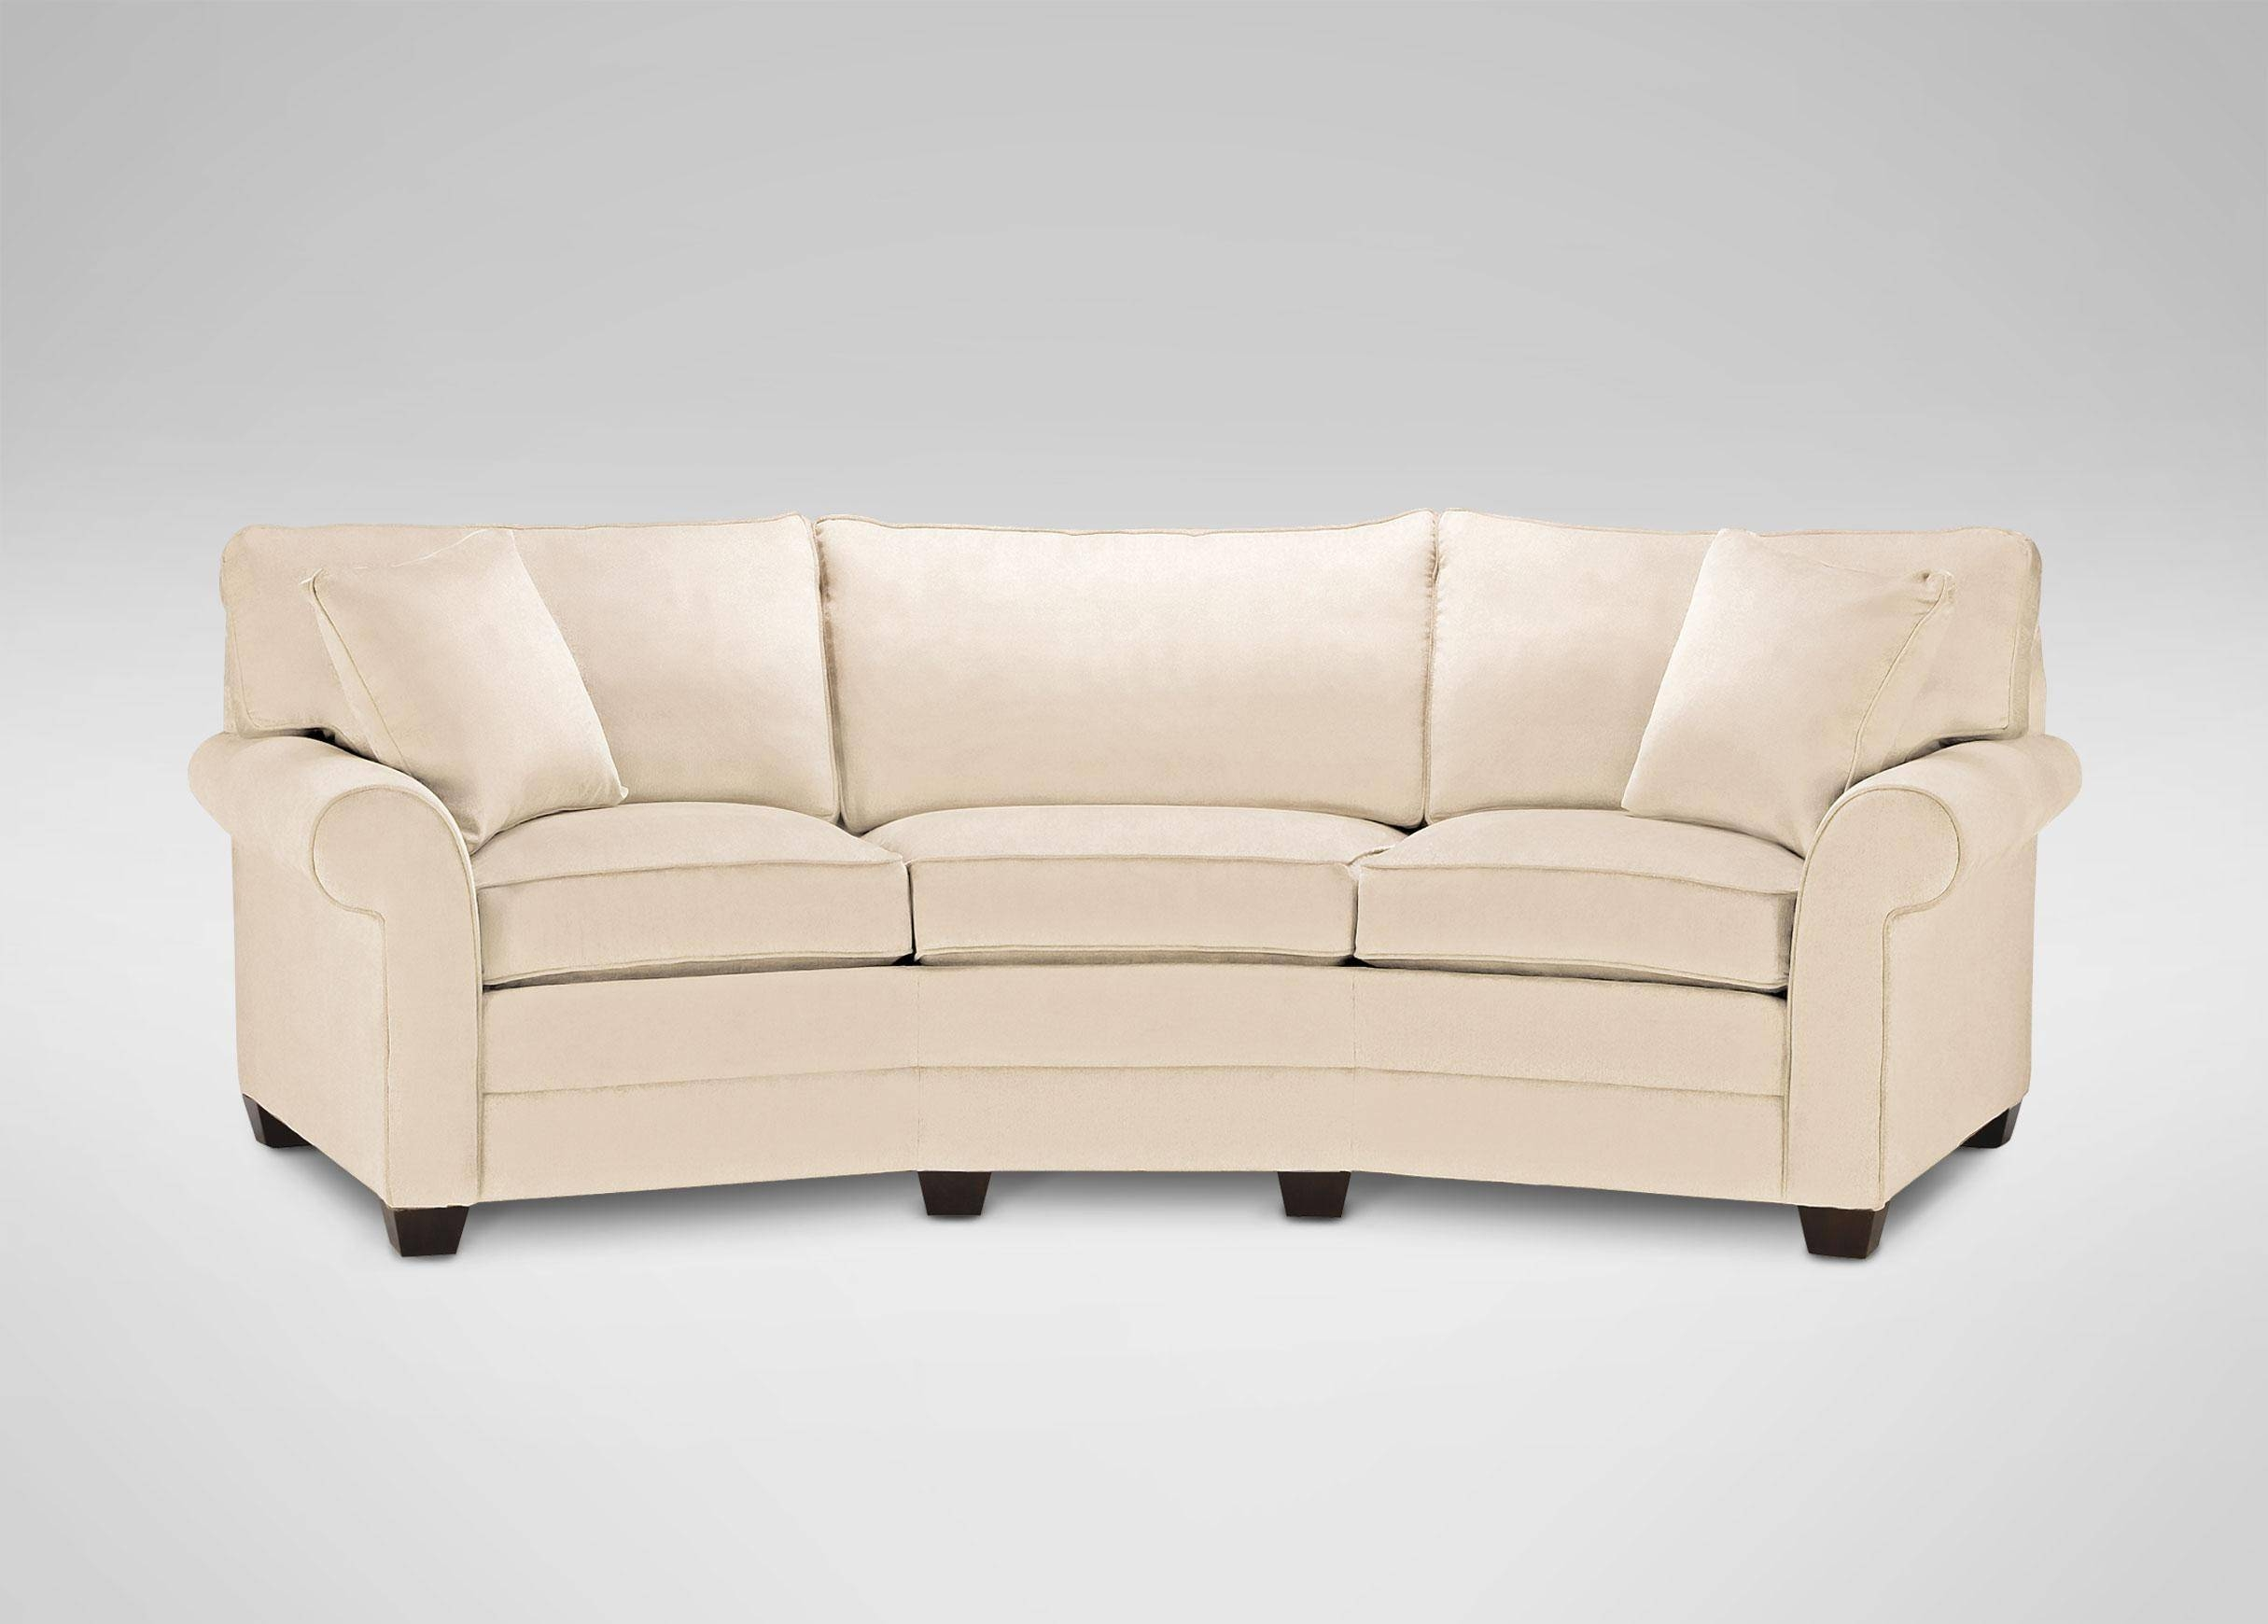 Sofa Ideas: Ethan Allen Chesterfield Sofas (Explore #8 Of 20 Photos) with regard to Ethan Allen Chesterfield Sofas (Image 15 of 15)